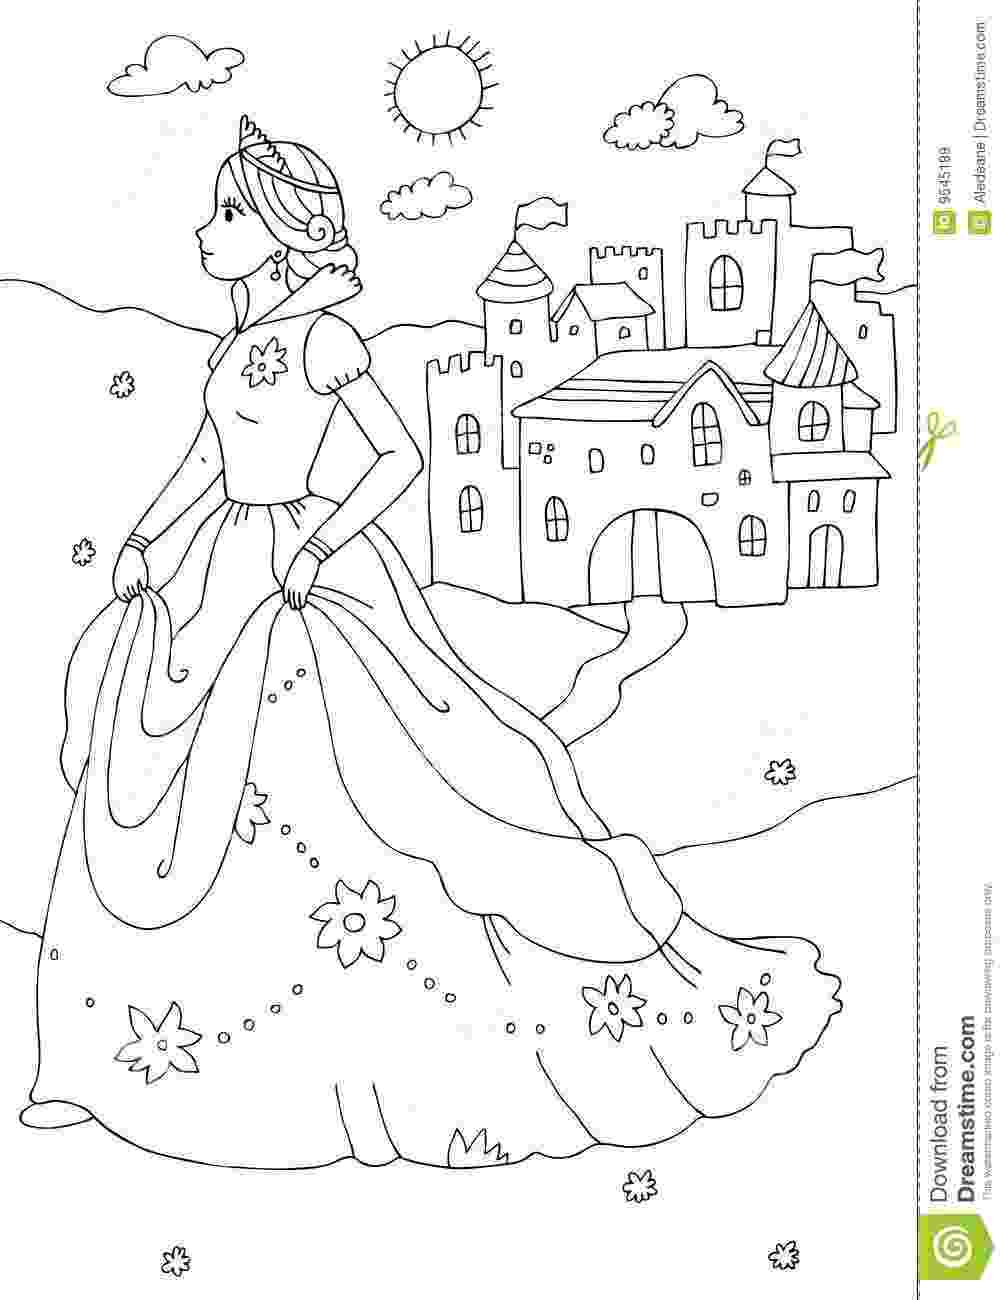 princess and castle coloring pages disney princess castle coloring pages to kids pages princess and coloring castle